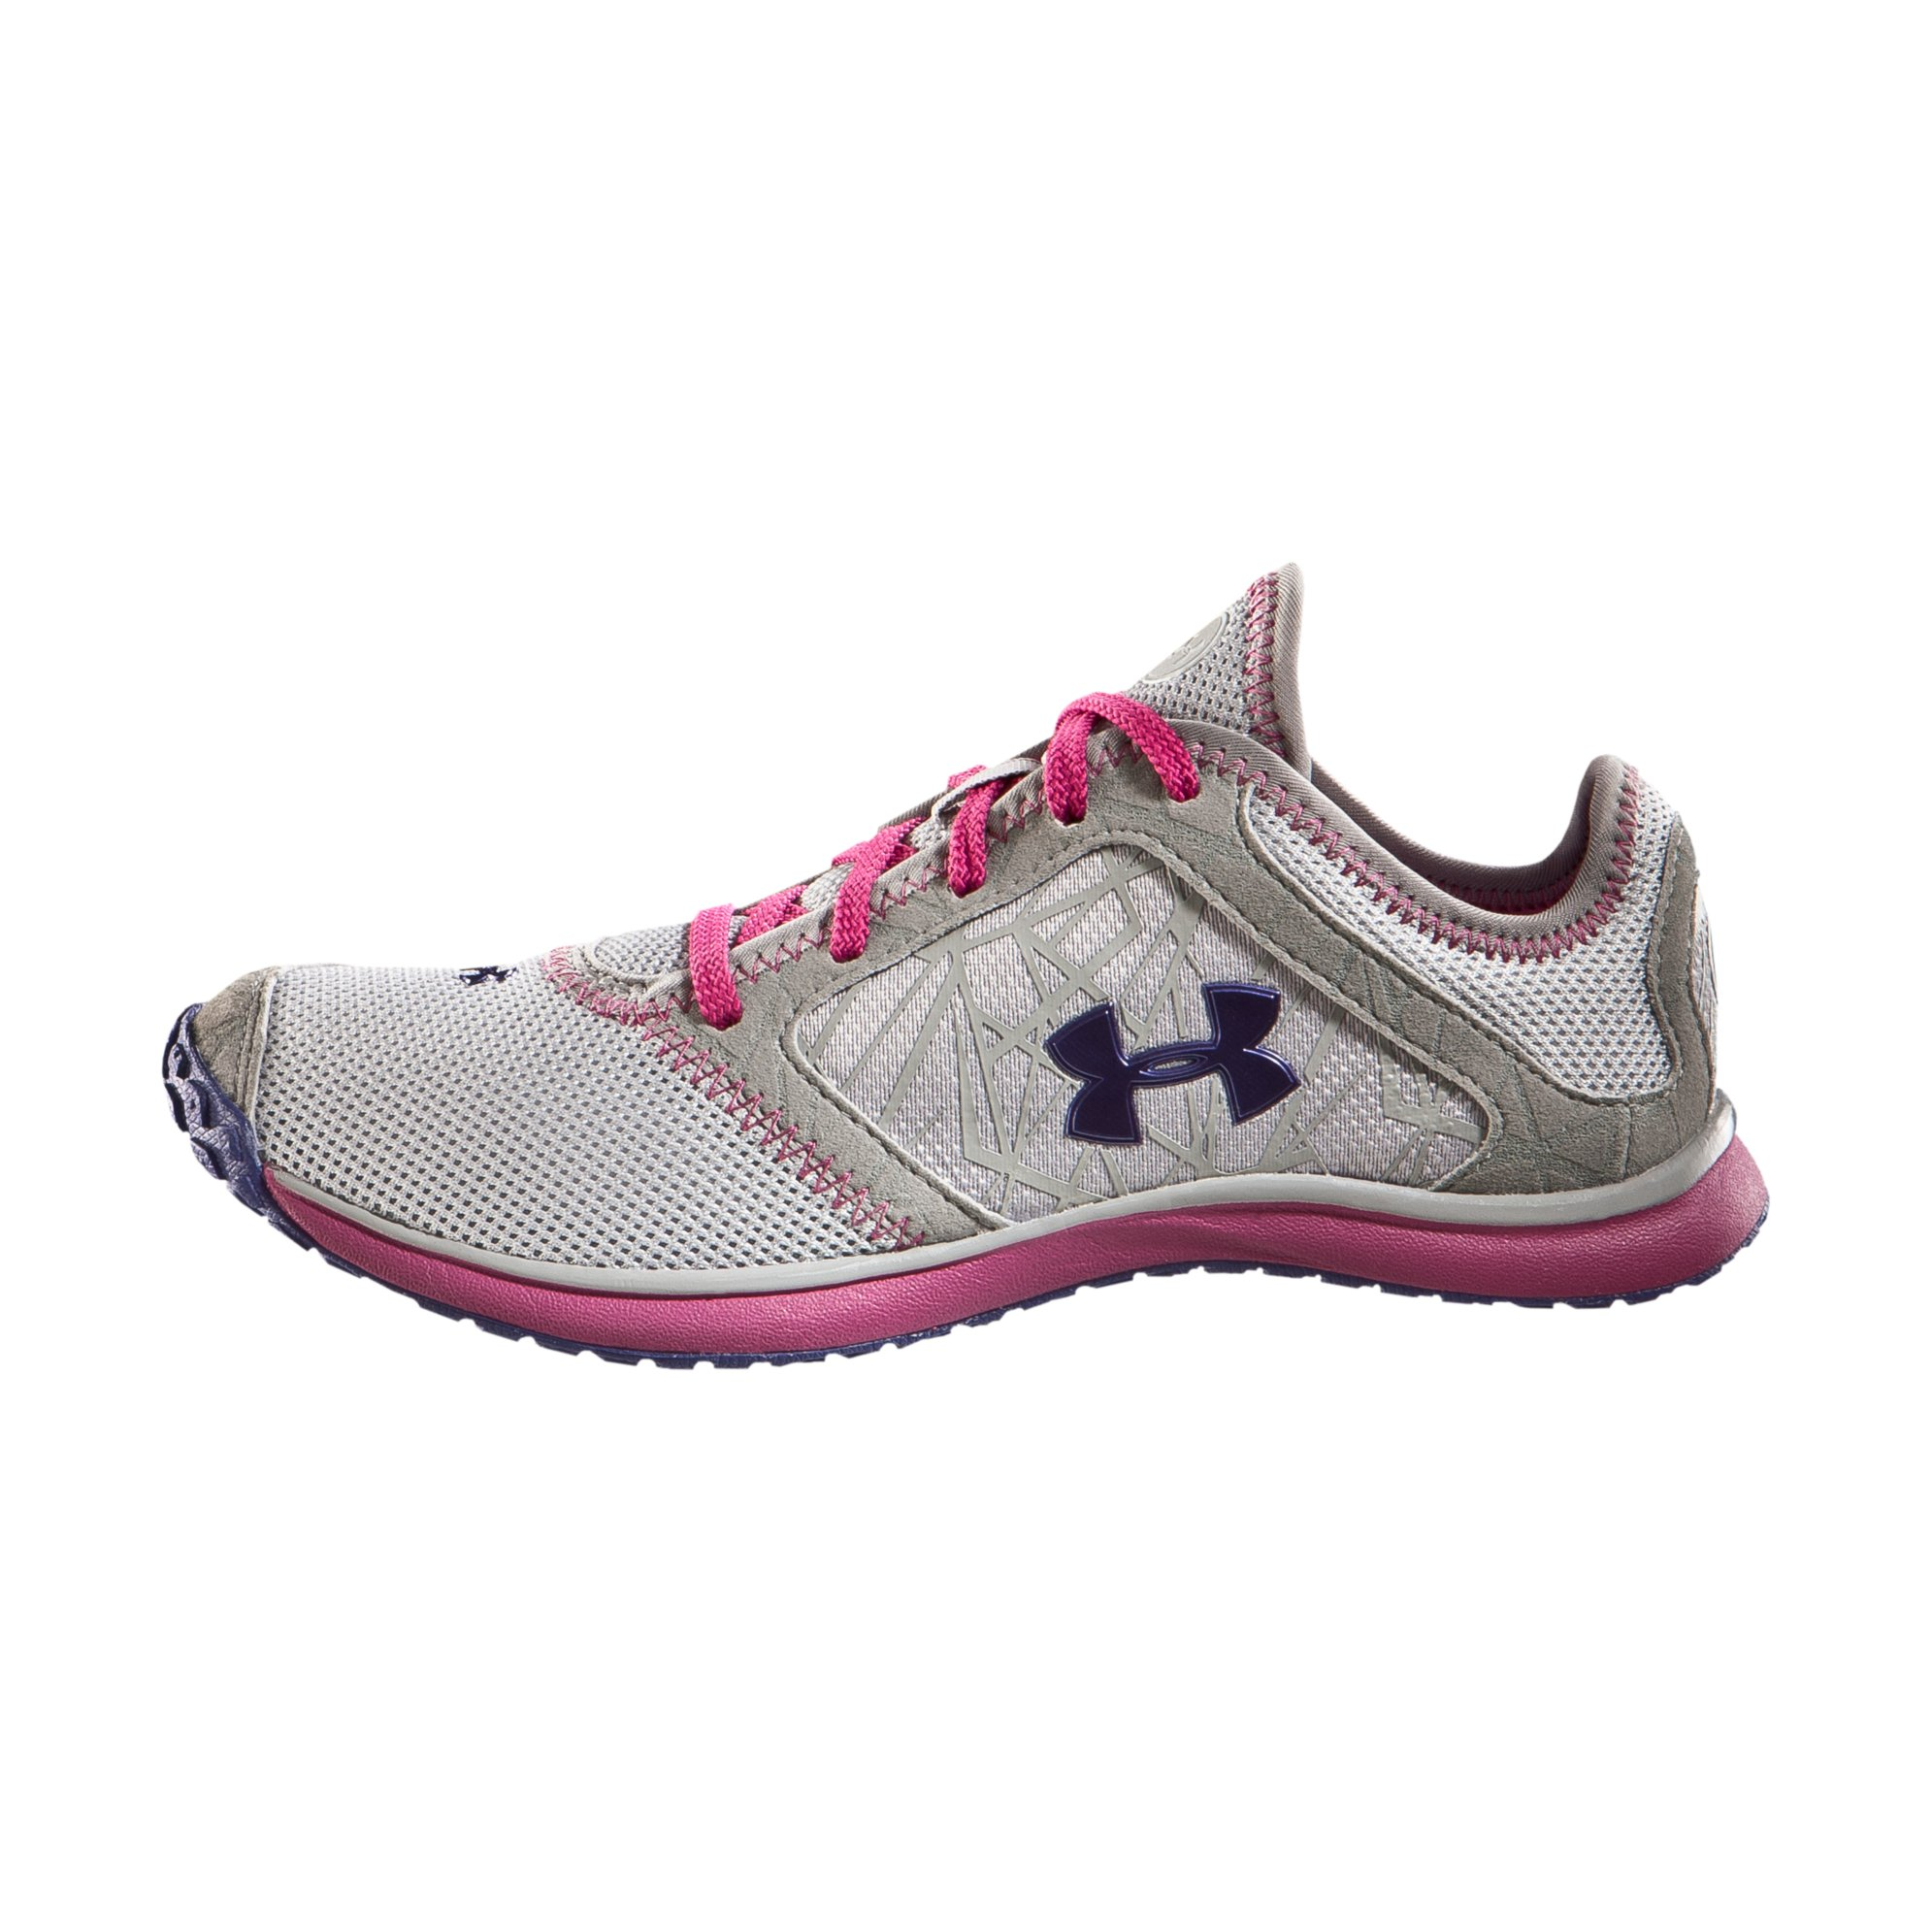 Deshaan Asks About Women's UA Go Running Shoes - Needle